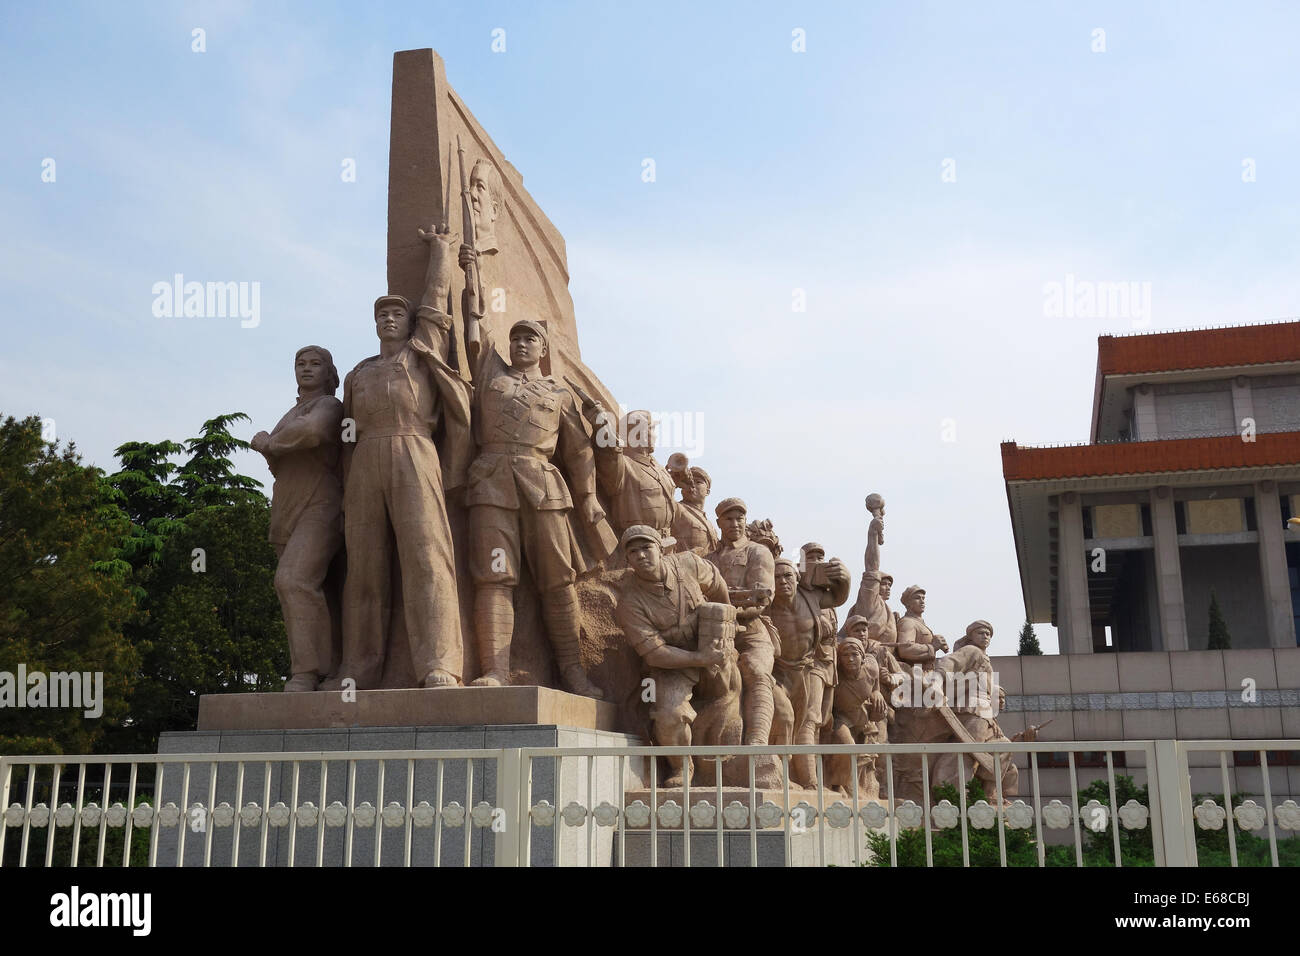 Idealized statue of Socialist workers in front of the Mausoleum of Chairman Mao in Tiananmen Square, Beijing, China - Stock Image